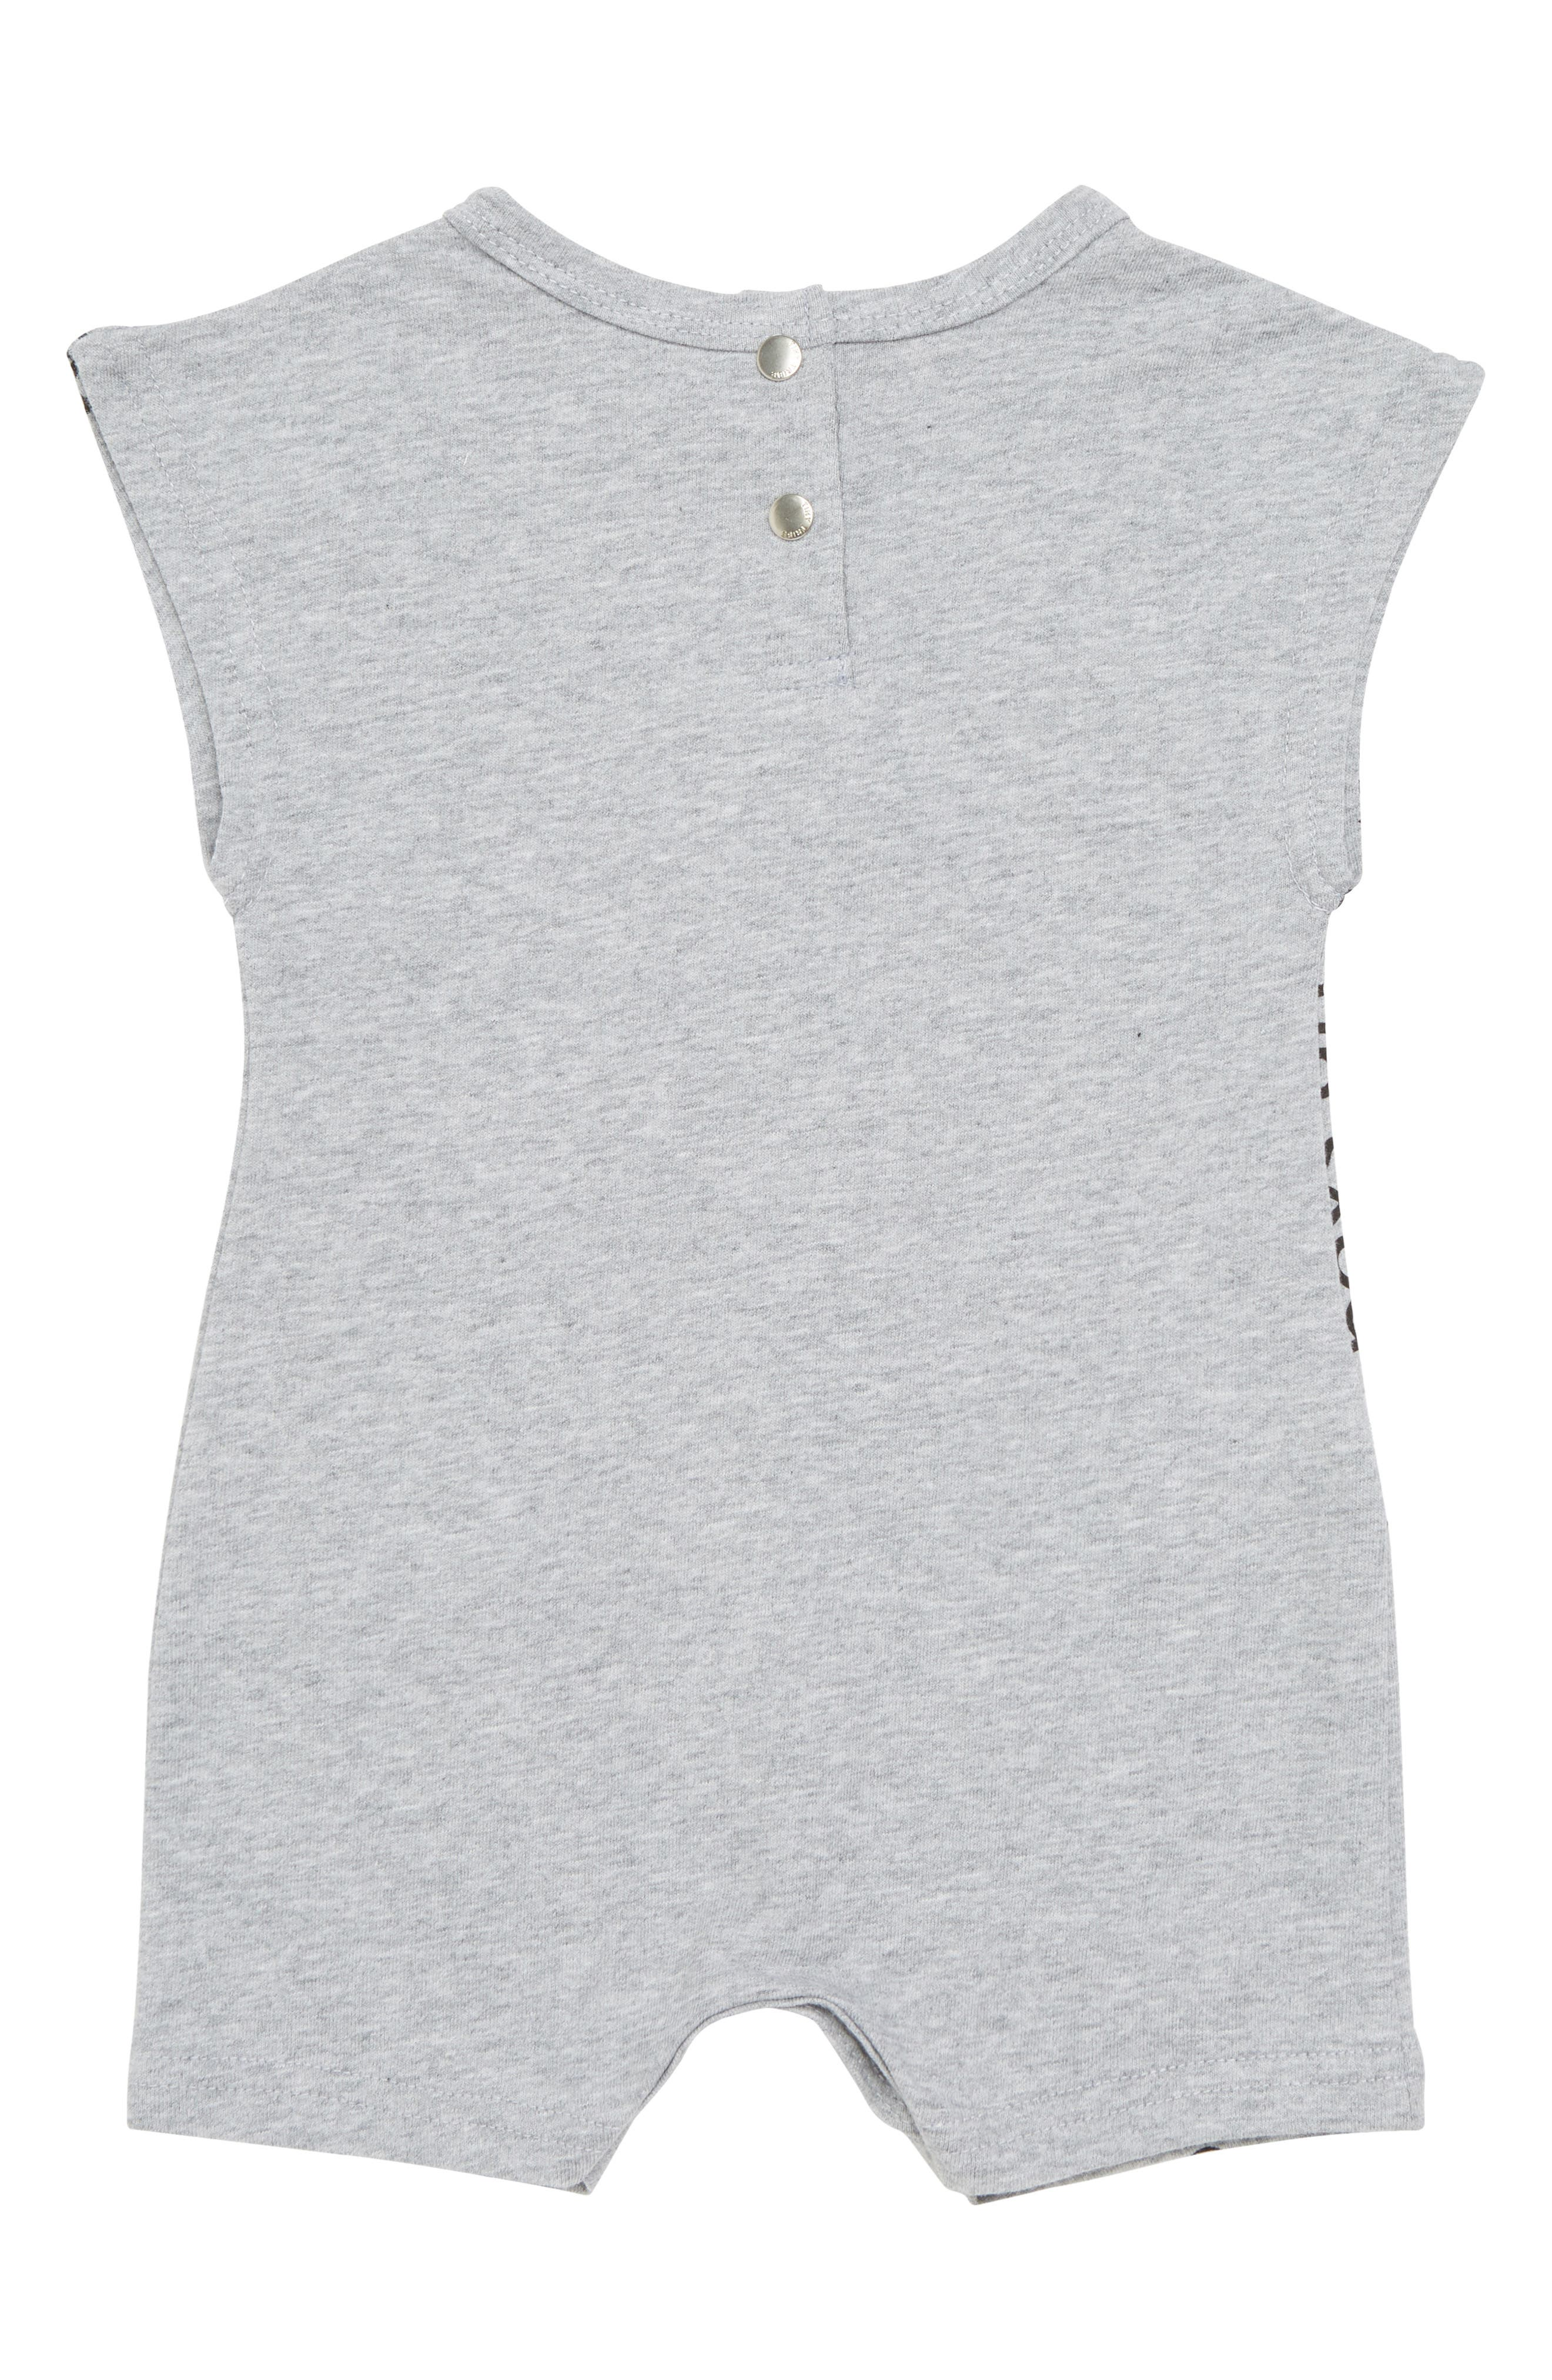 Boys are Awesome Romper,                             Alternate thumbnail 2, color,                             Grey